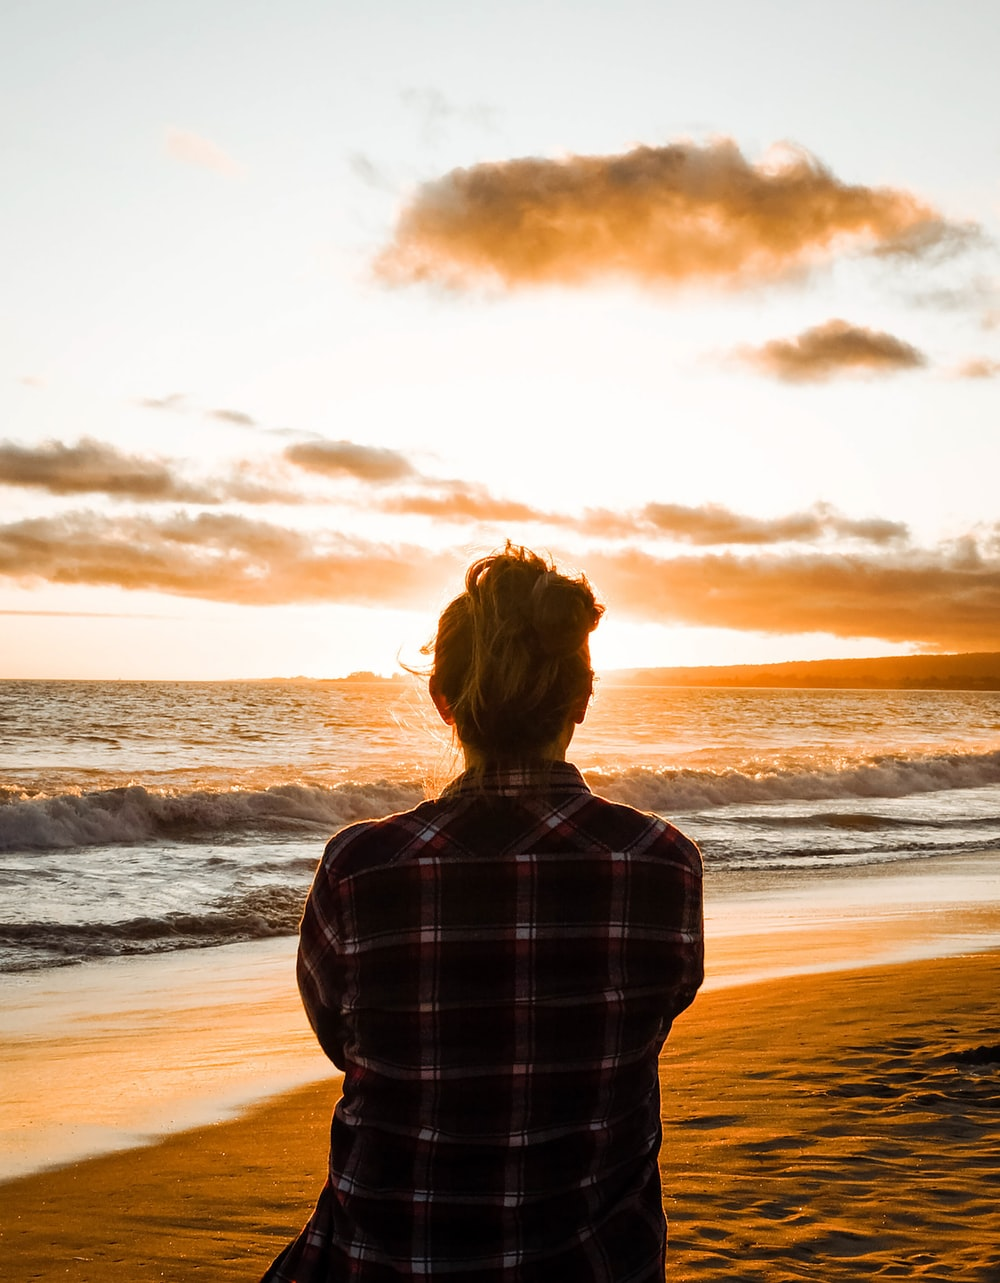 woman in black and white plaid dress shirt standing on seashore during sunset